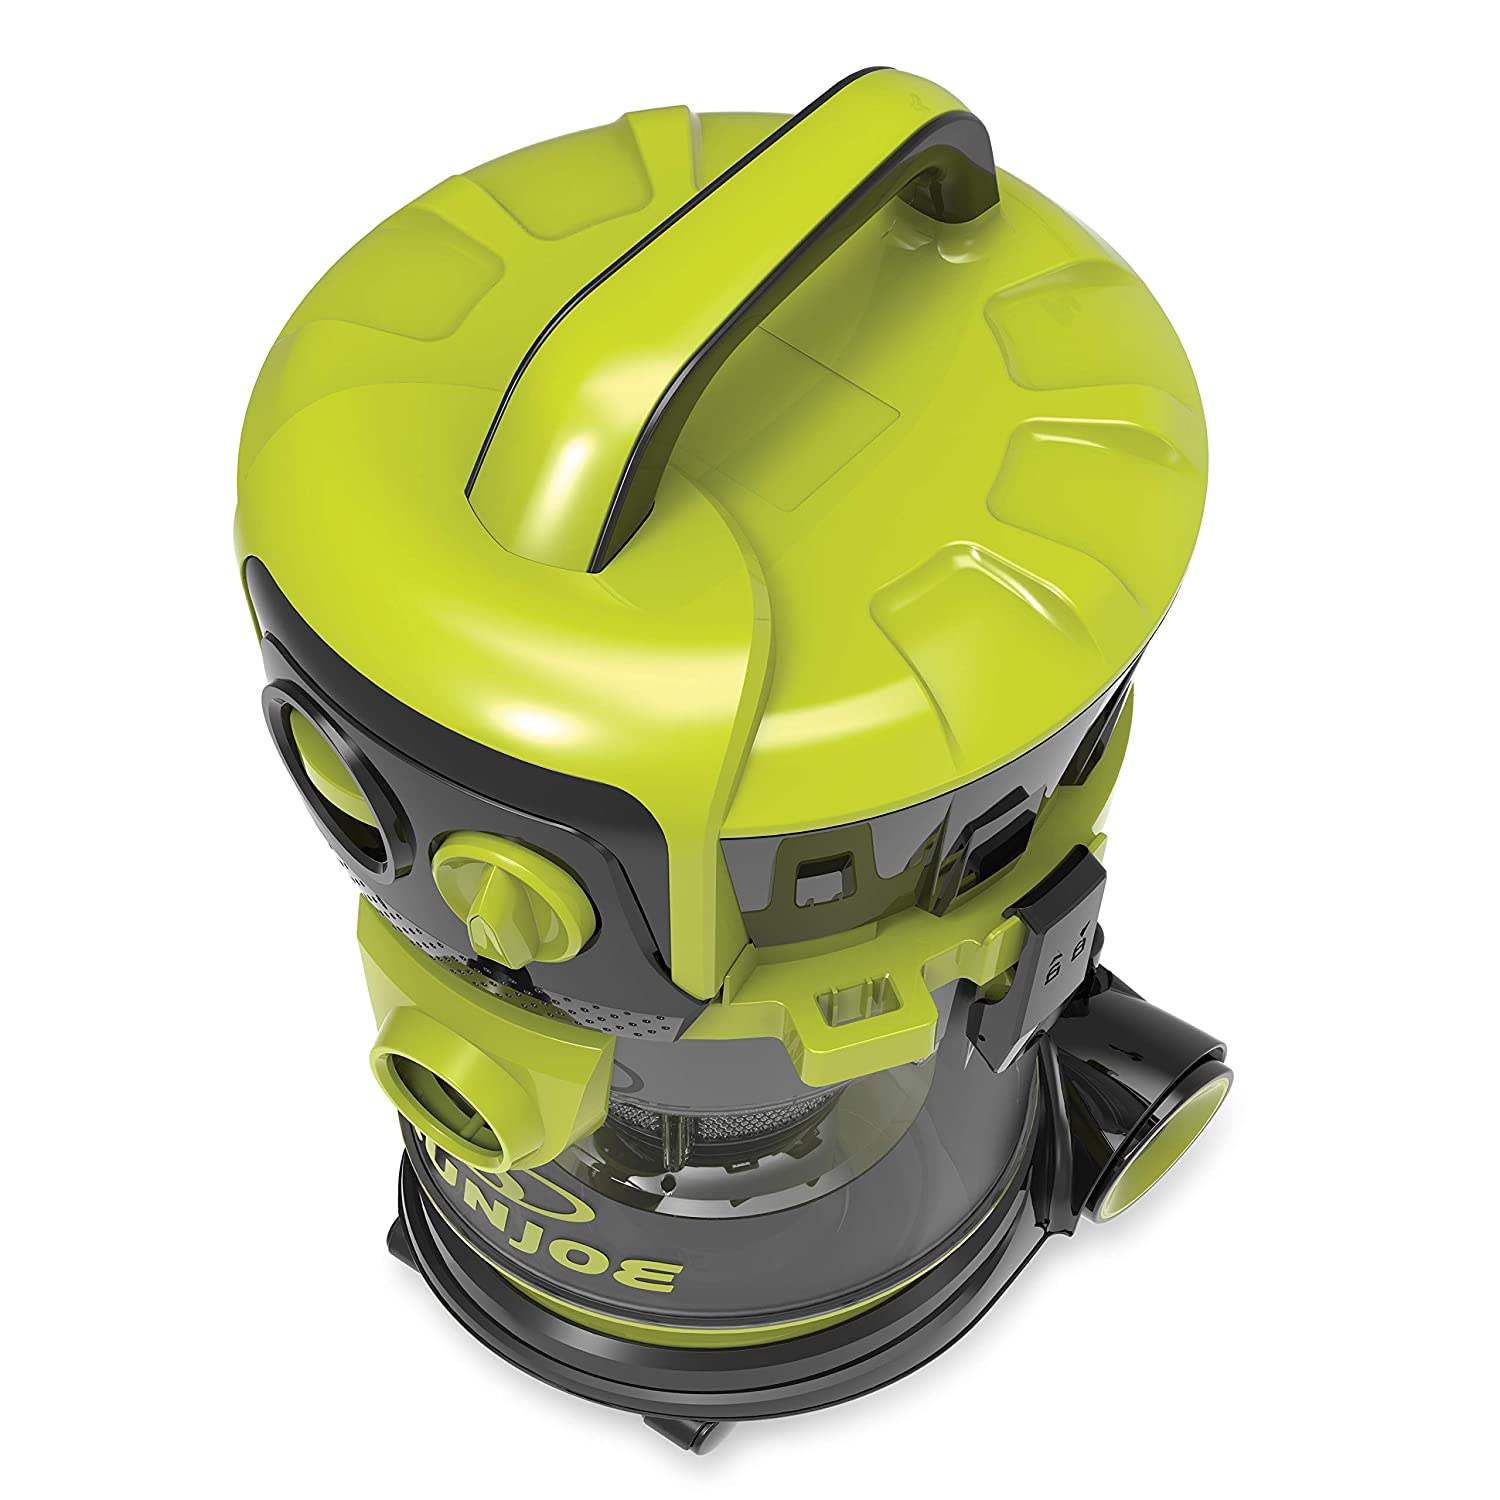 Sun Joe SWD4000 4 Gal. 3.5 Peak HP Industrial Motor Wheeled Wet Dry Vacuum, Green